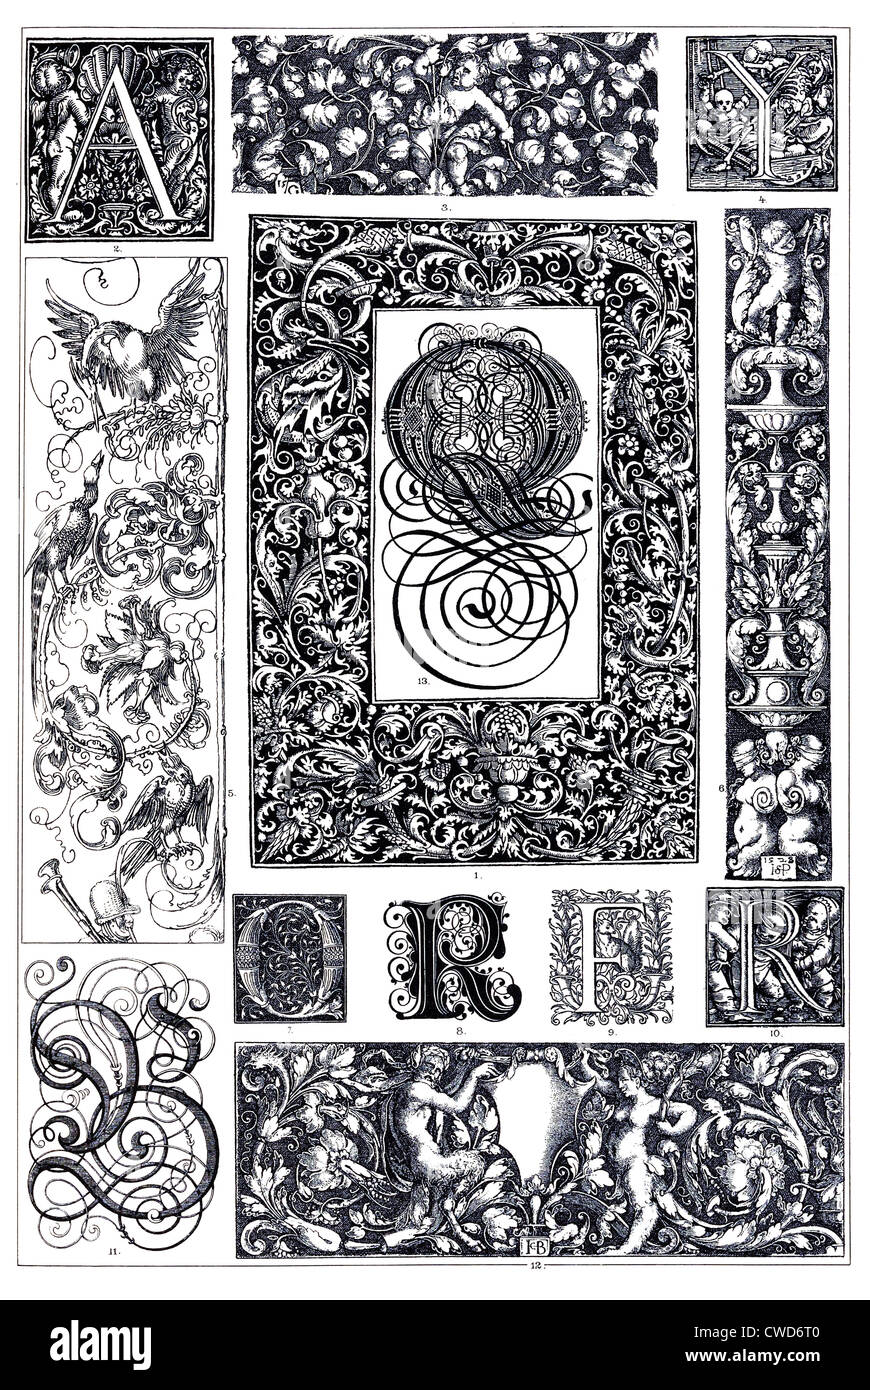 Renaissance German typographical ornaments - Stock Image